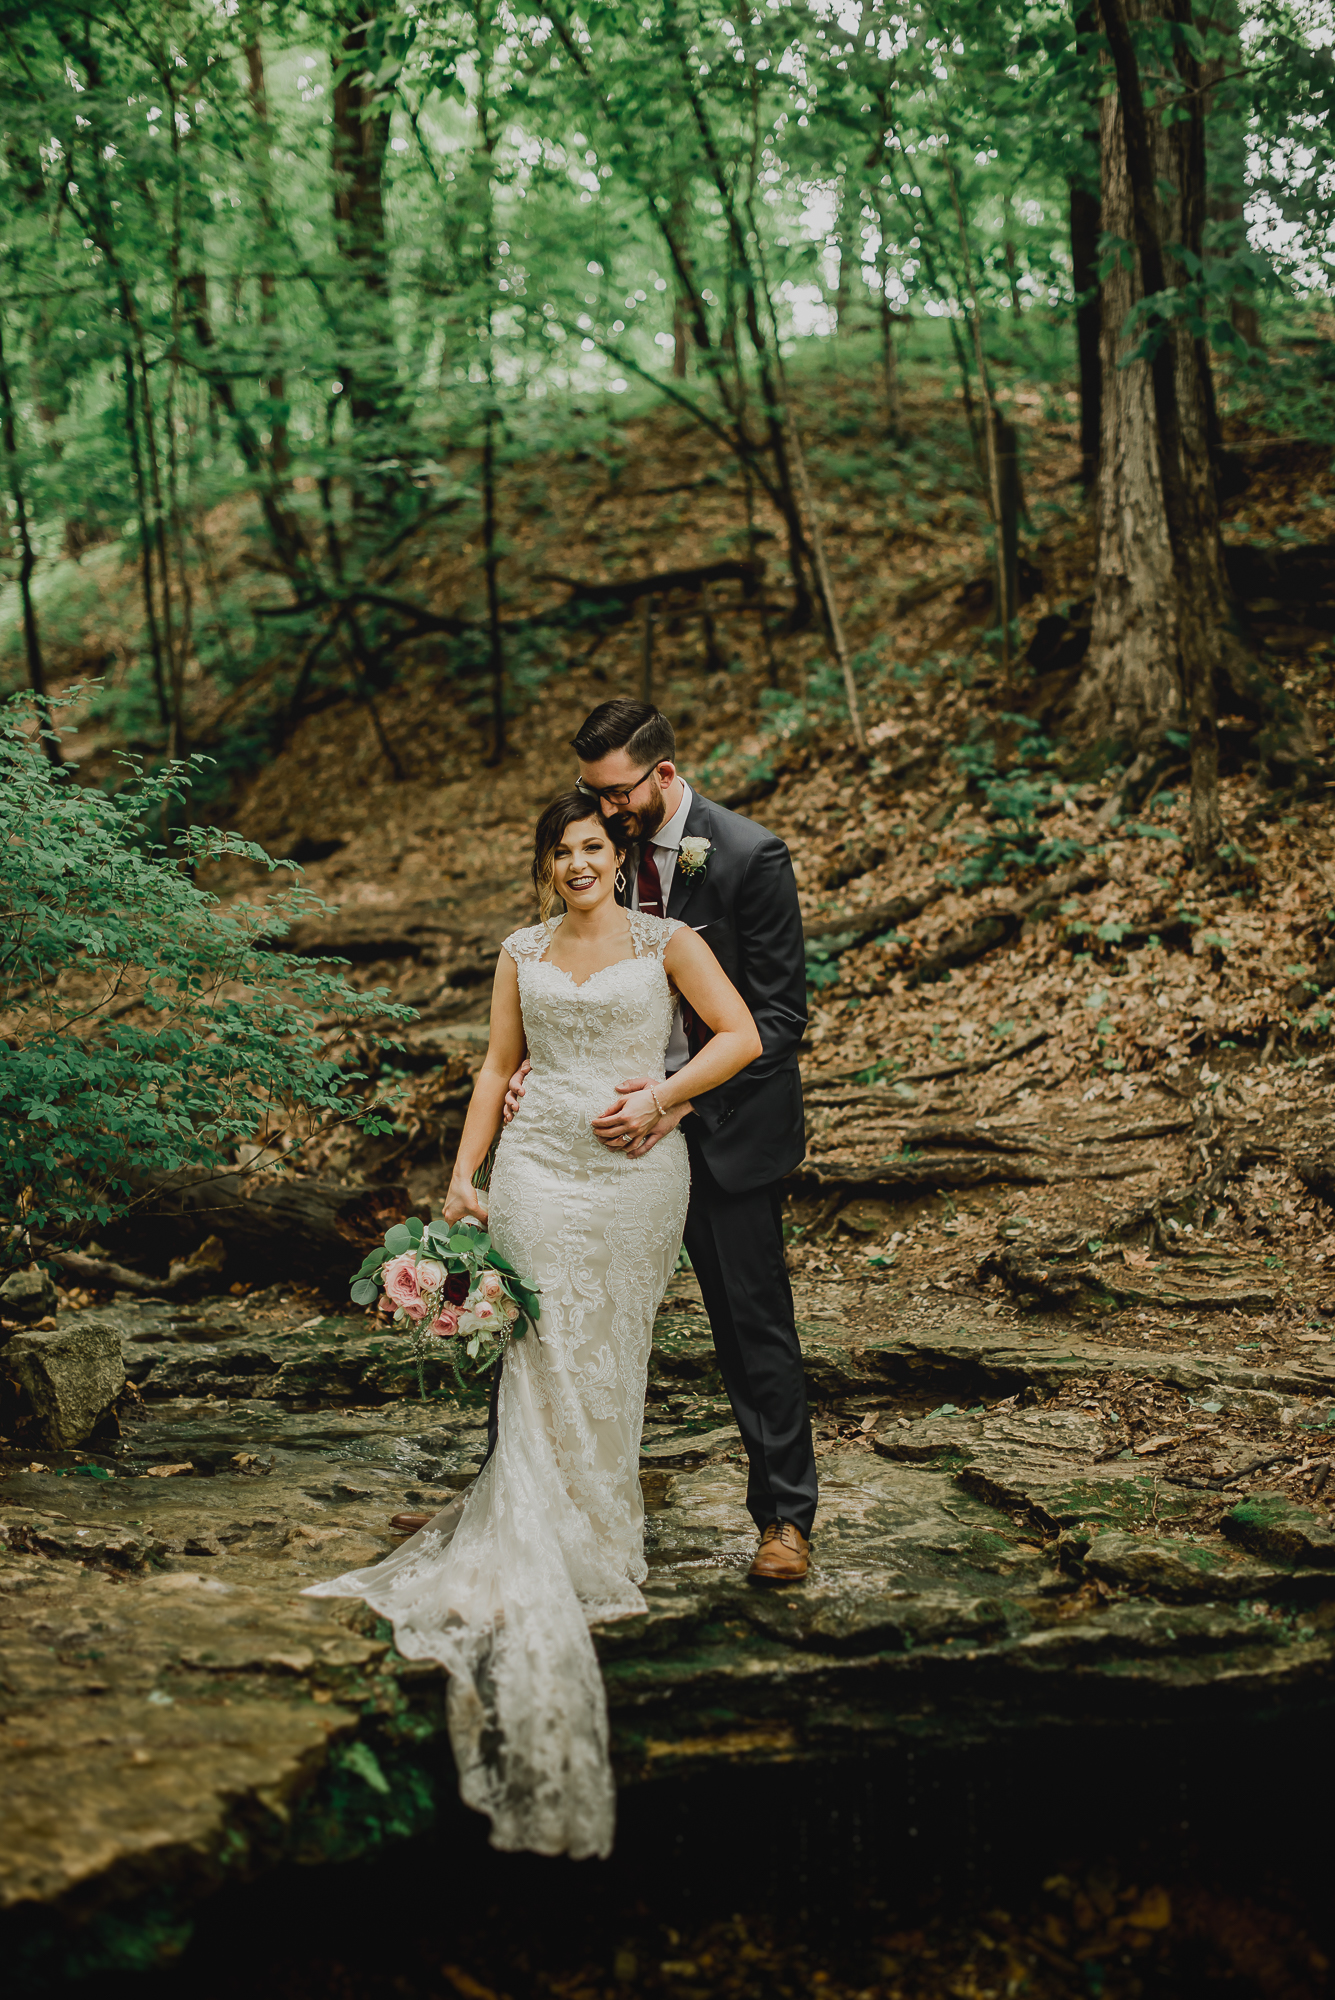 Melissa Cervantes Photography _ Kelsey + Ben Junebug Weddings Submission-72.jpg